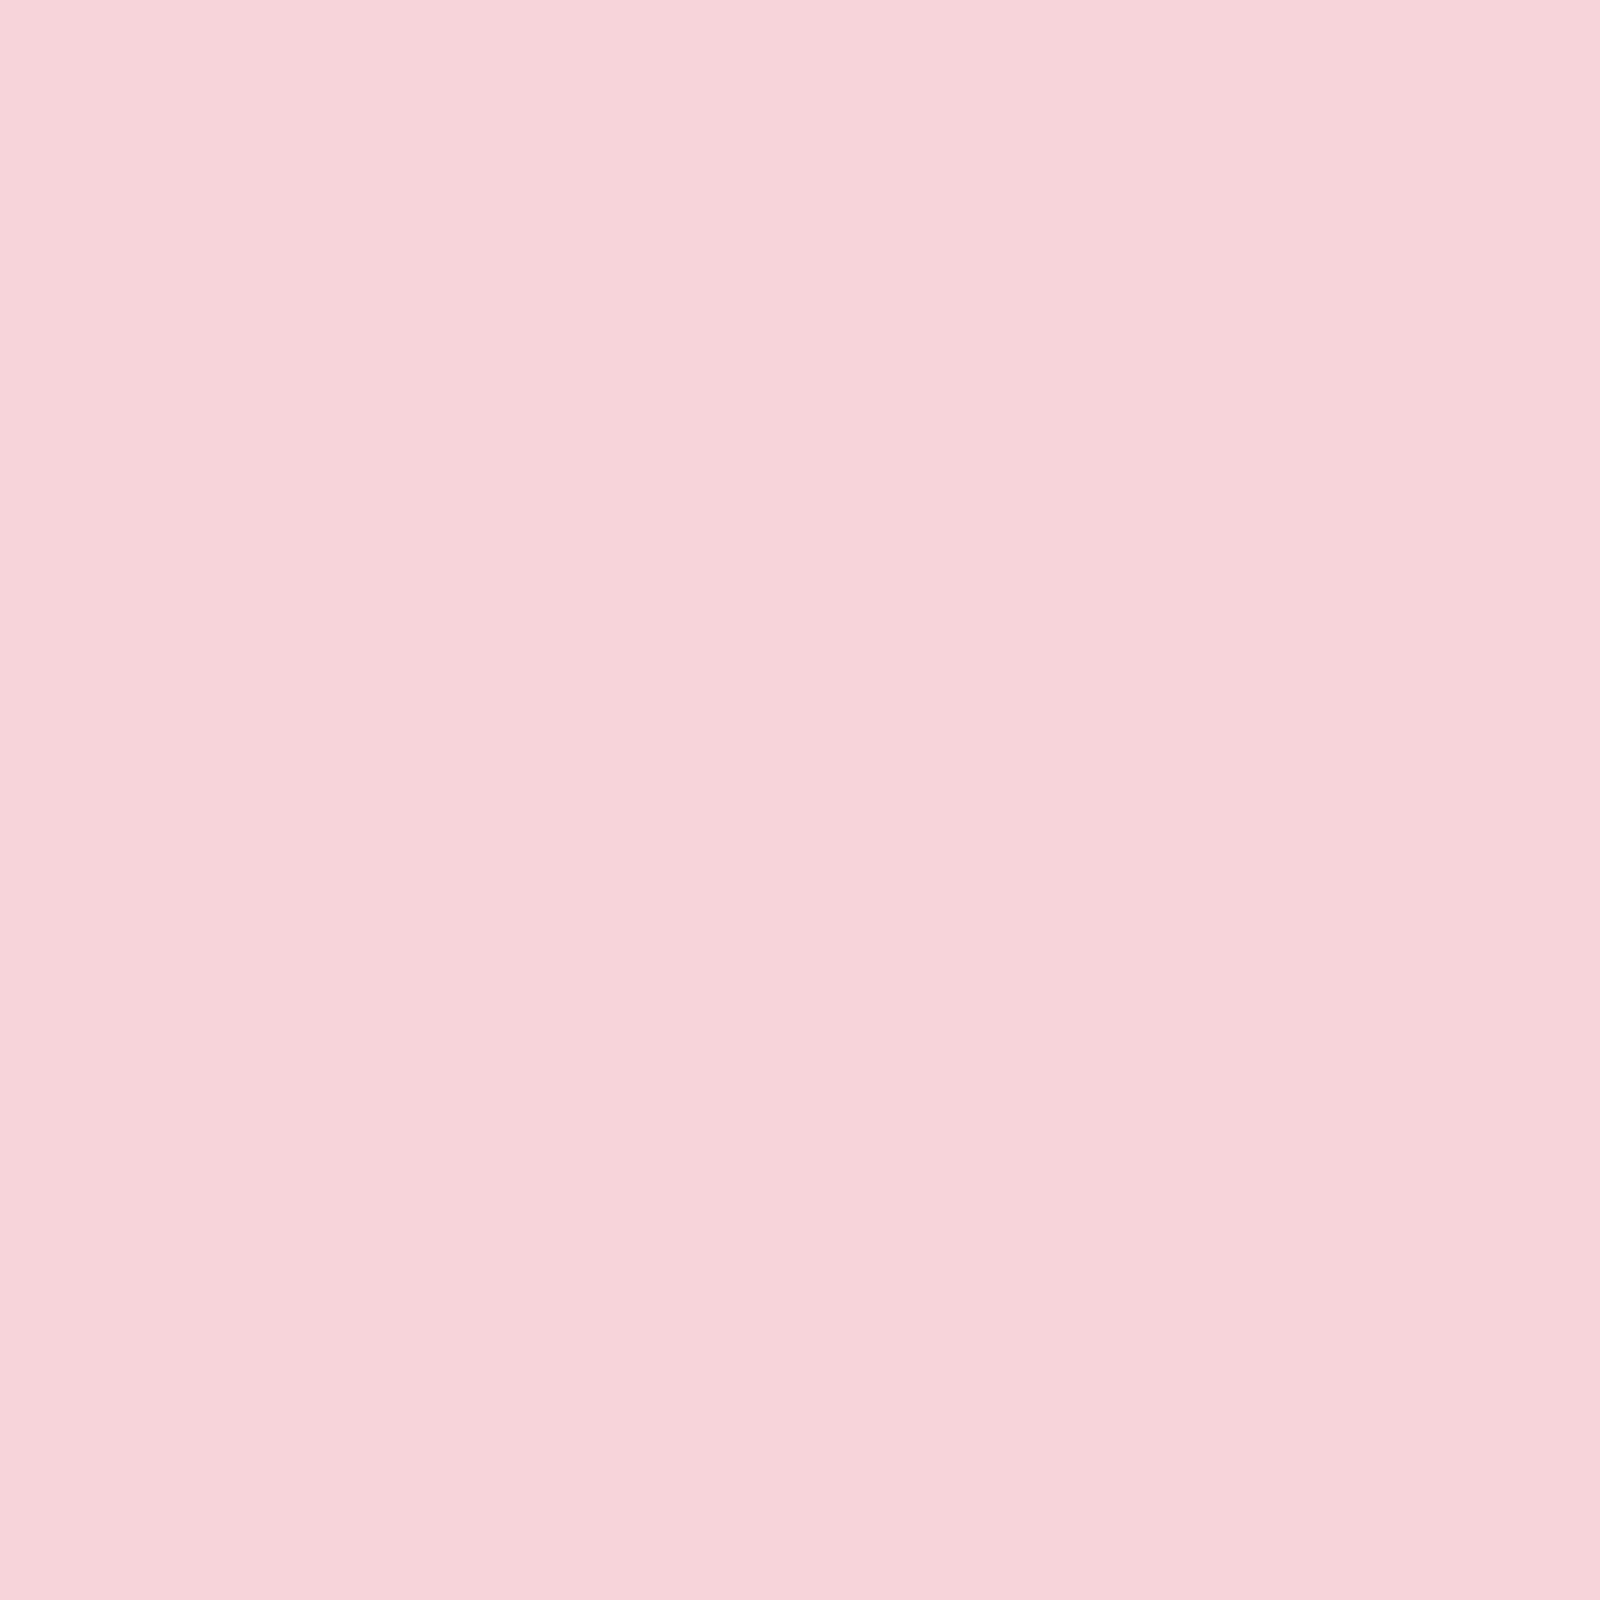 Bazzill Smoothies Cardstock 12X12-Pink Frosting